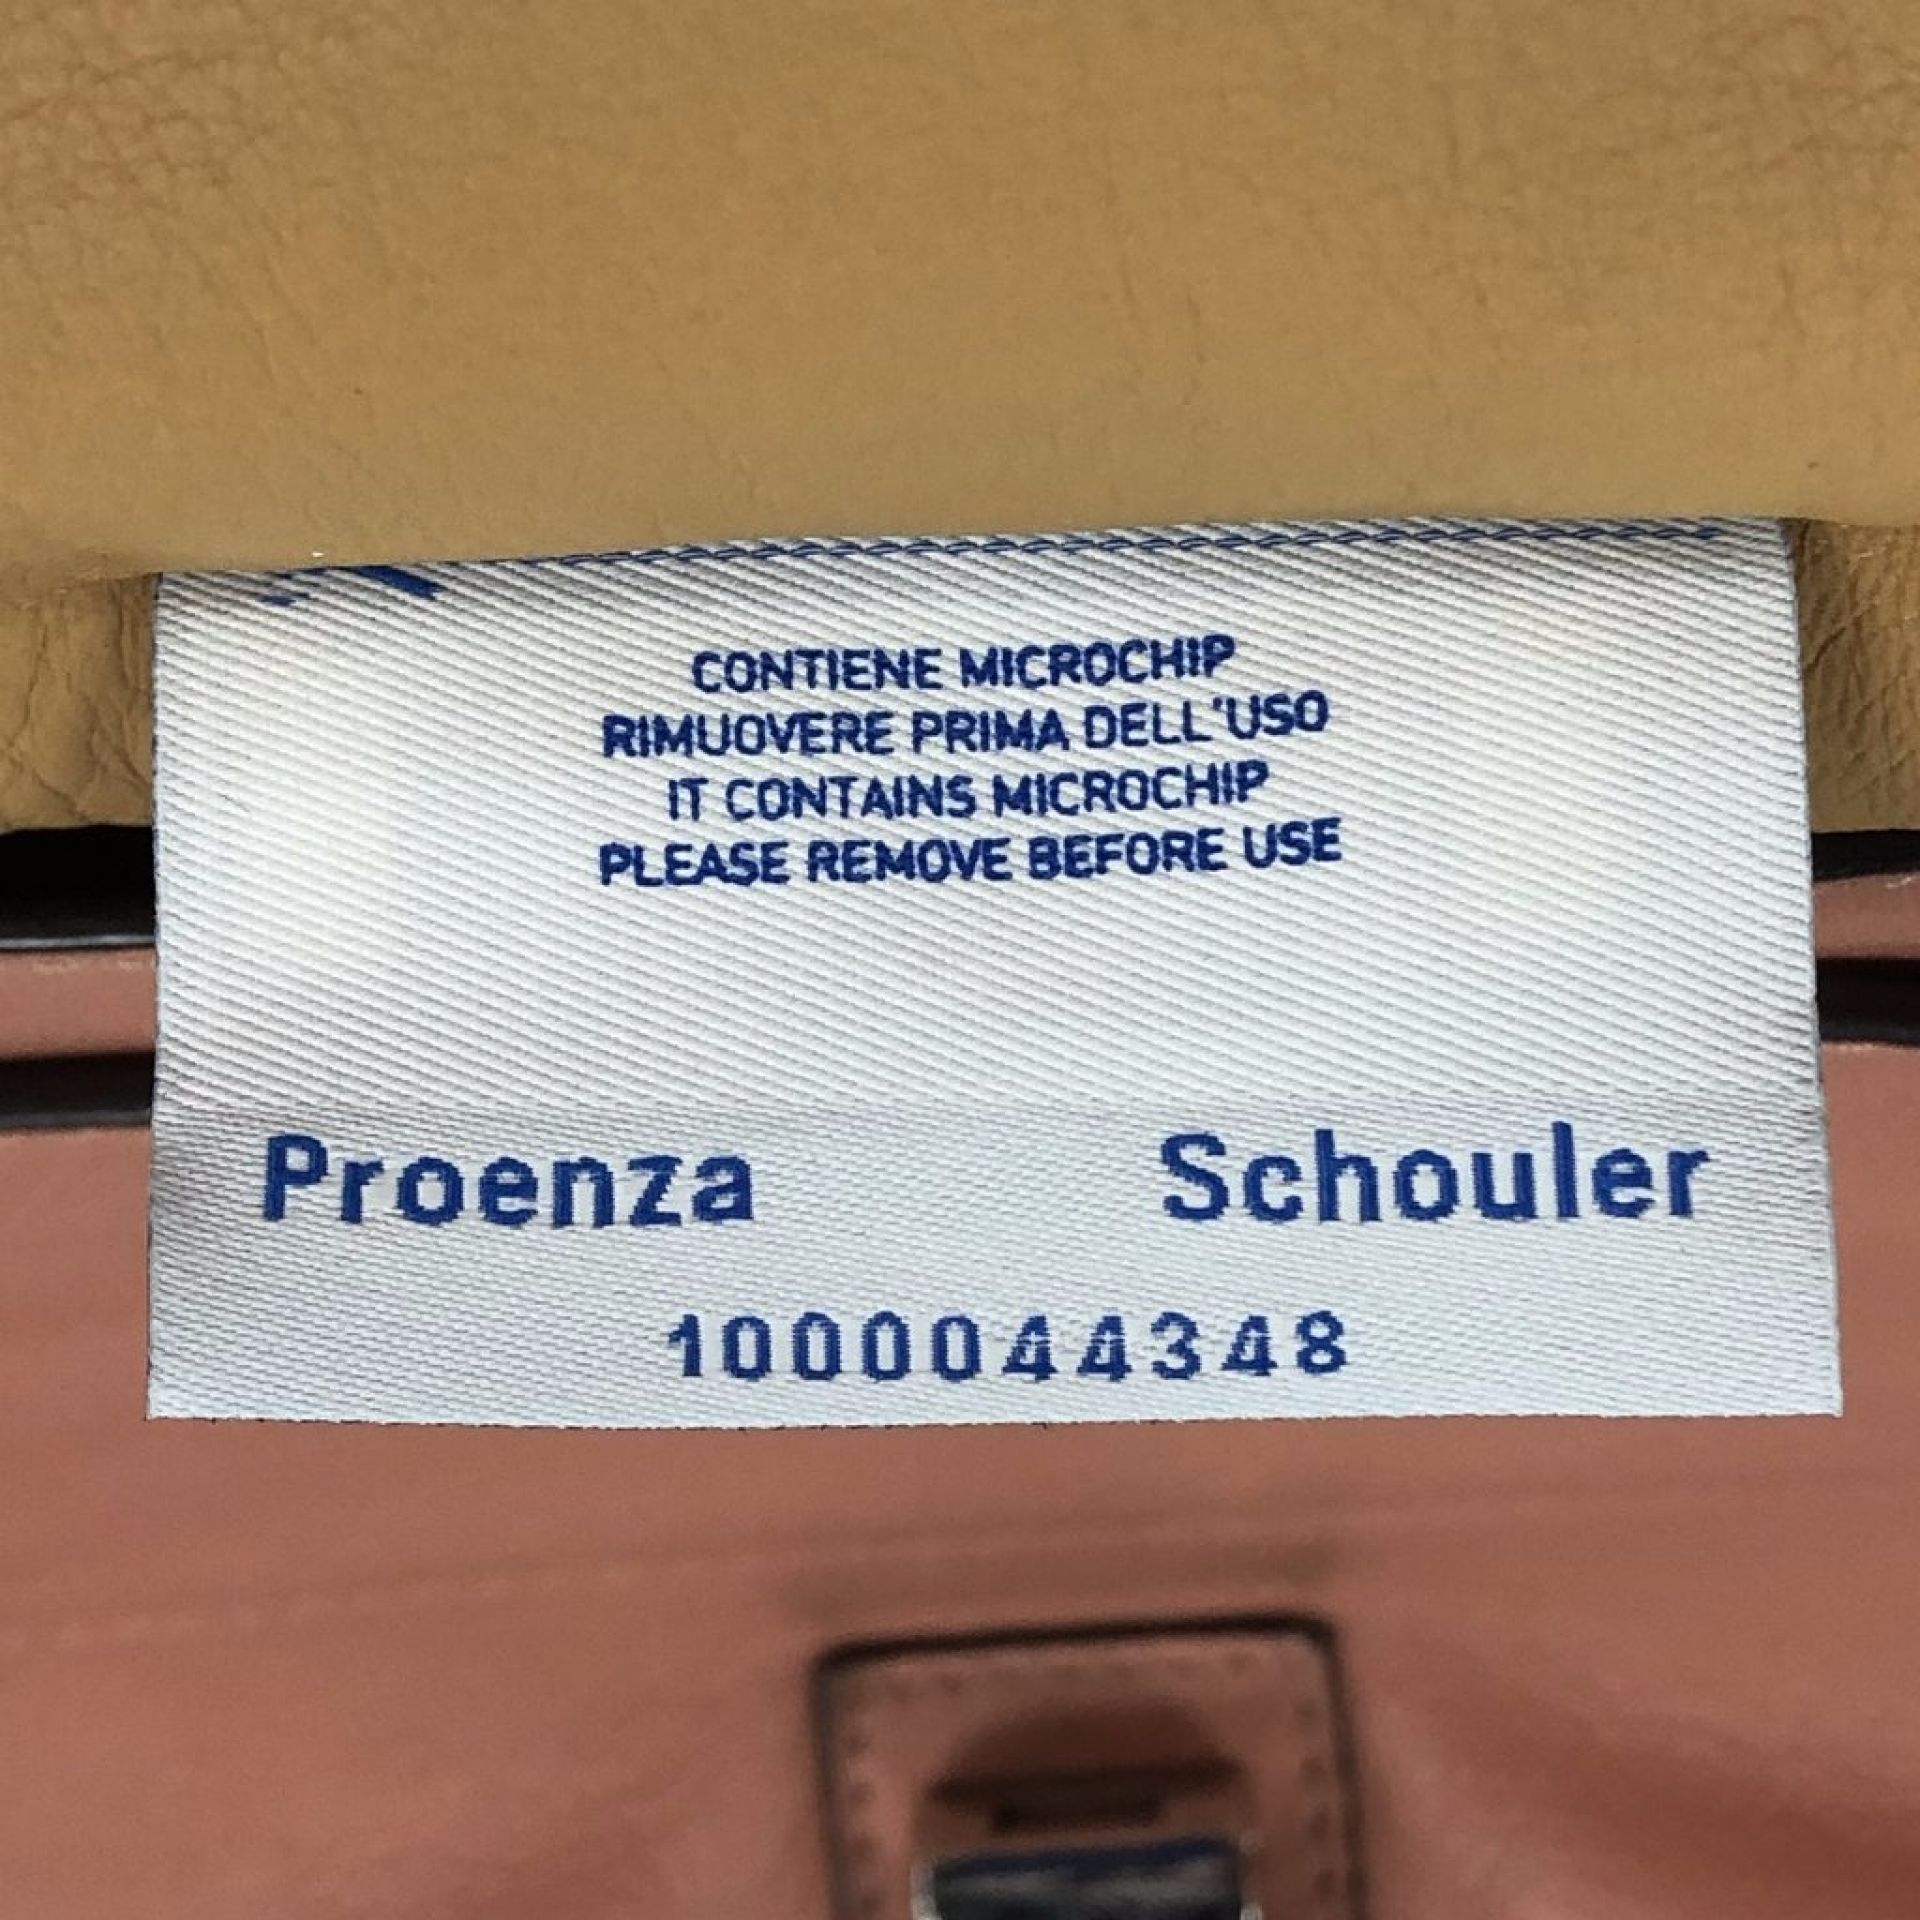 Proenza Schouler Proenza Schouler Courier Bag Leather Large